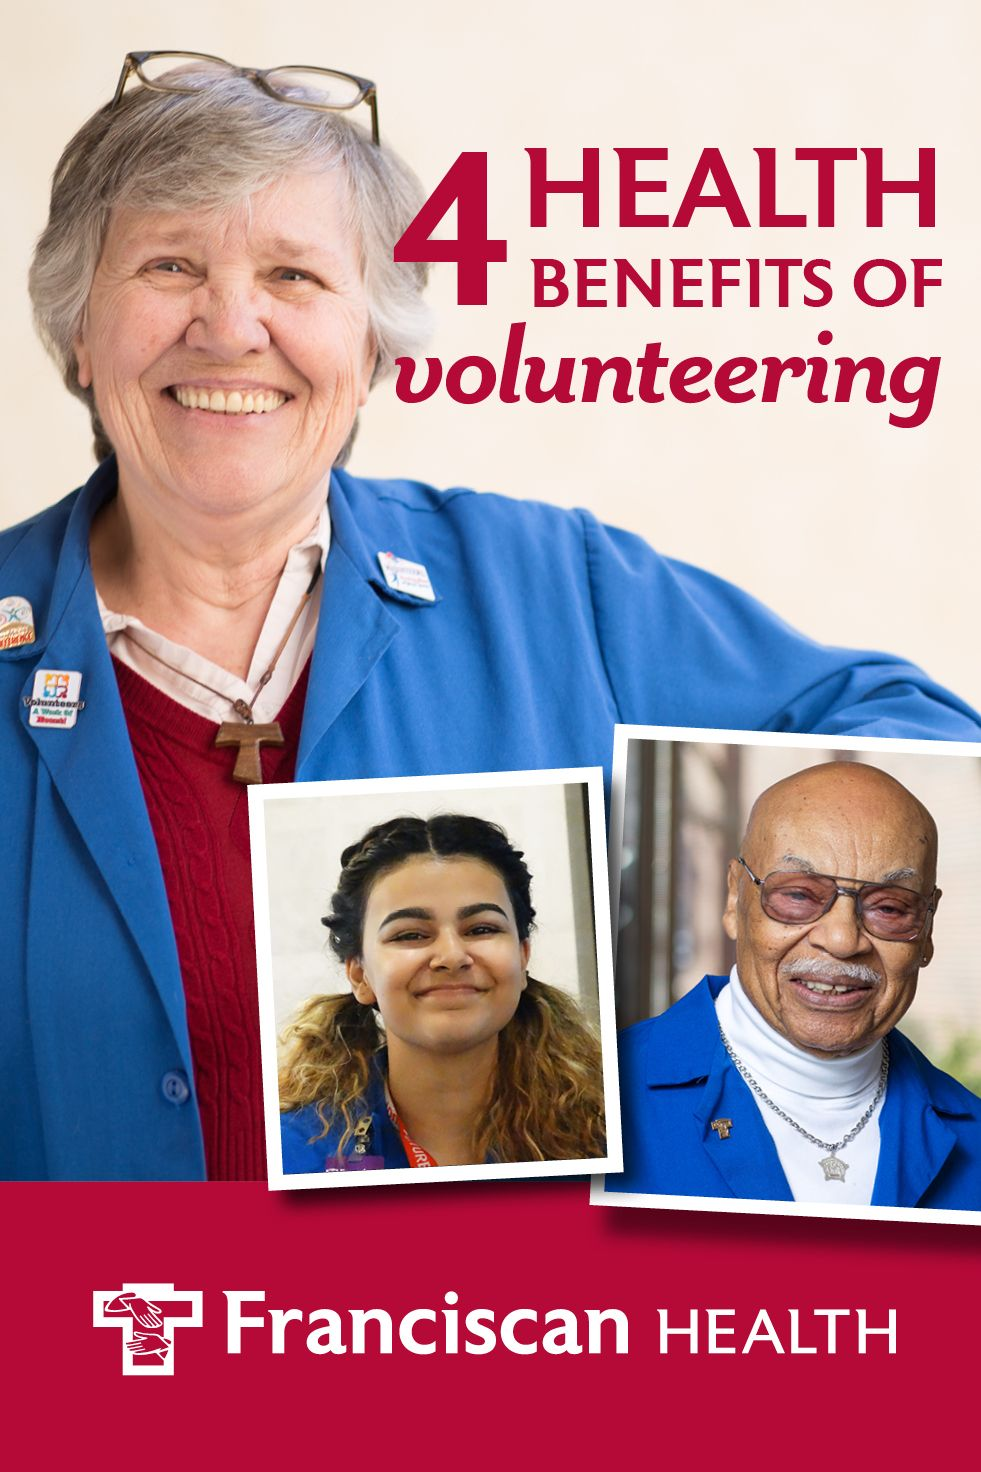 Volunteering is a commitment of personal time and energy